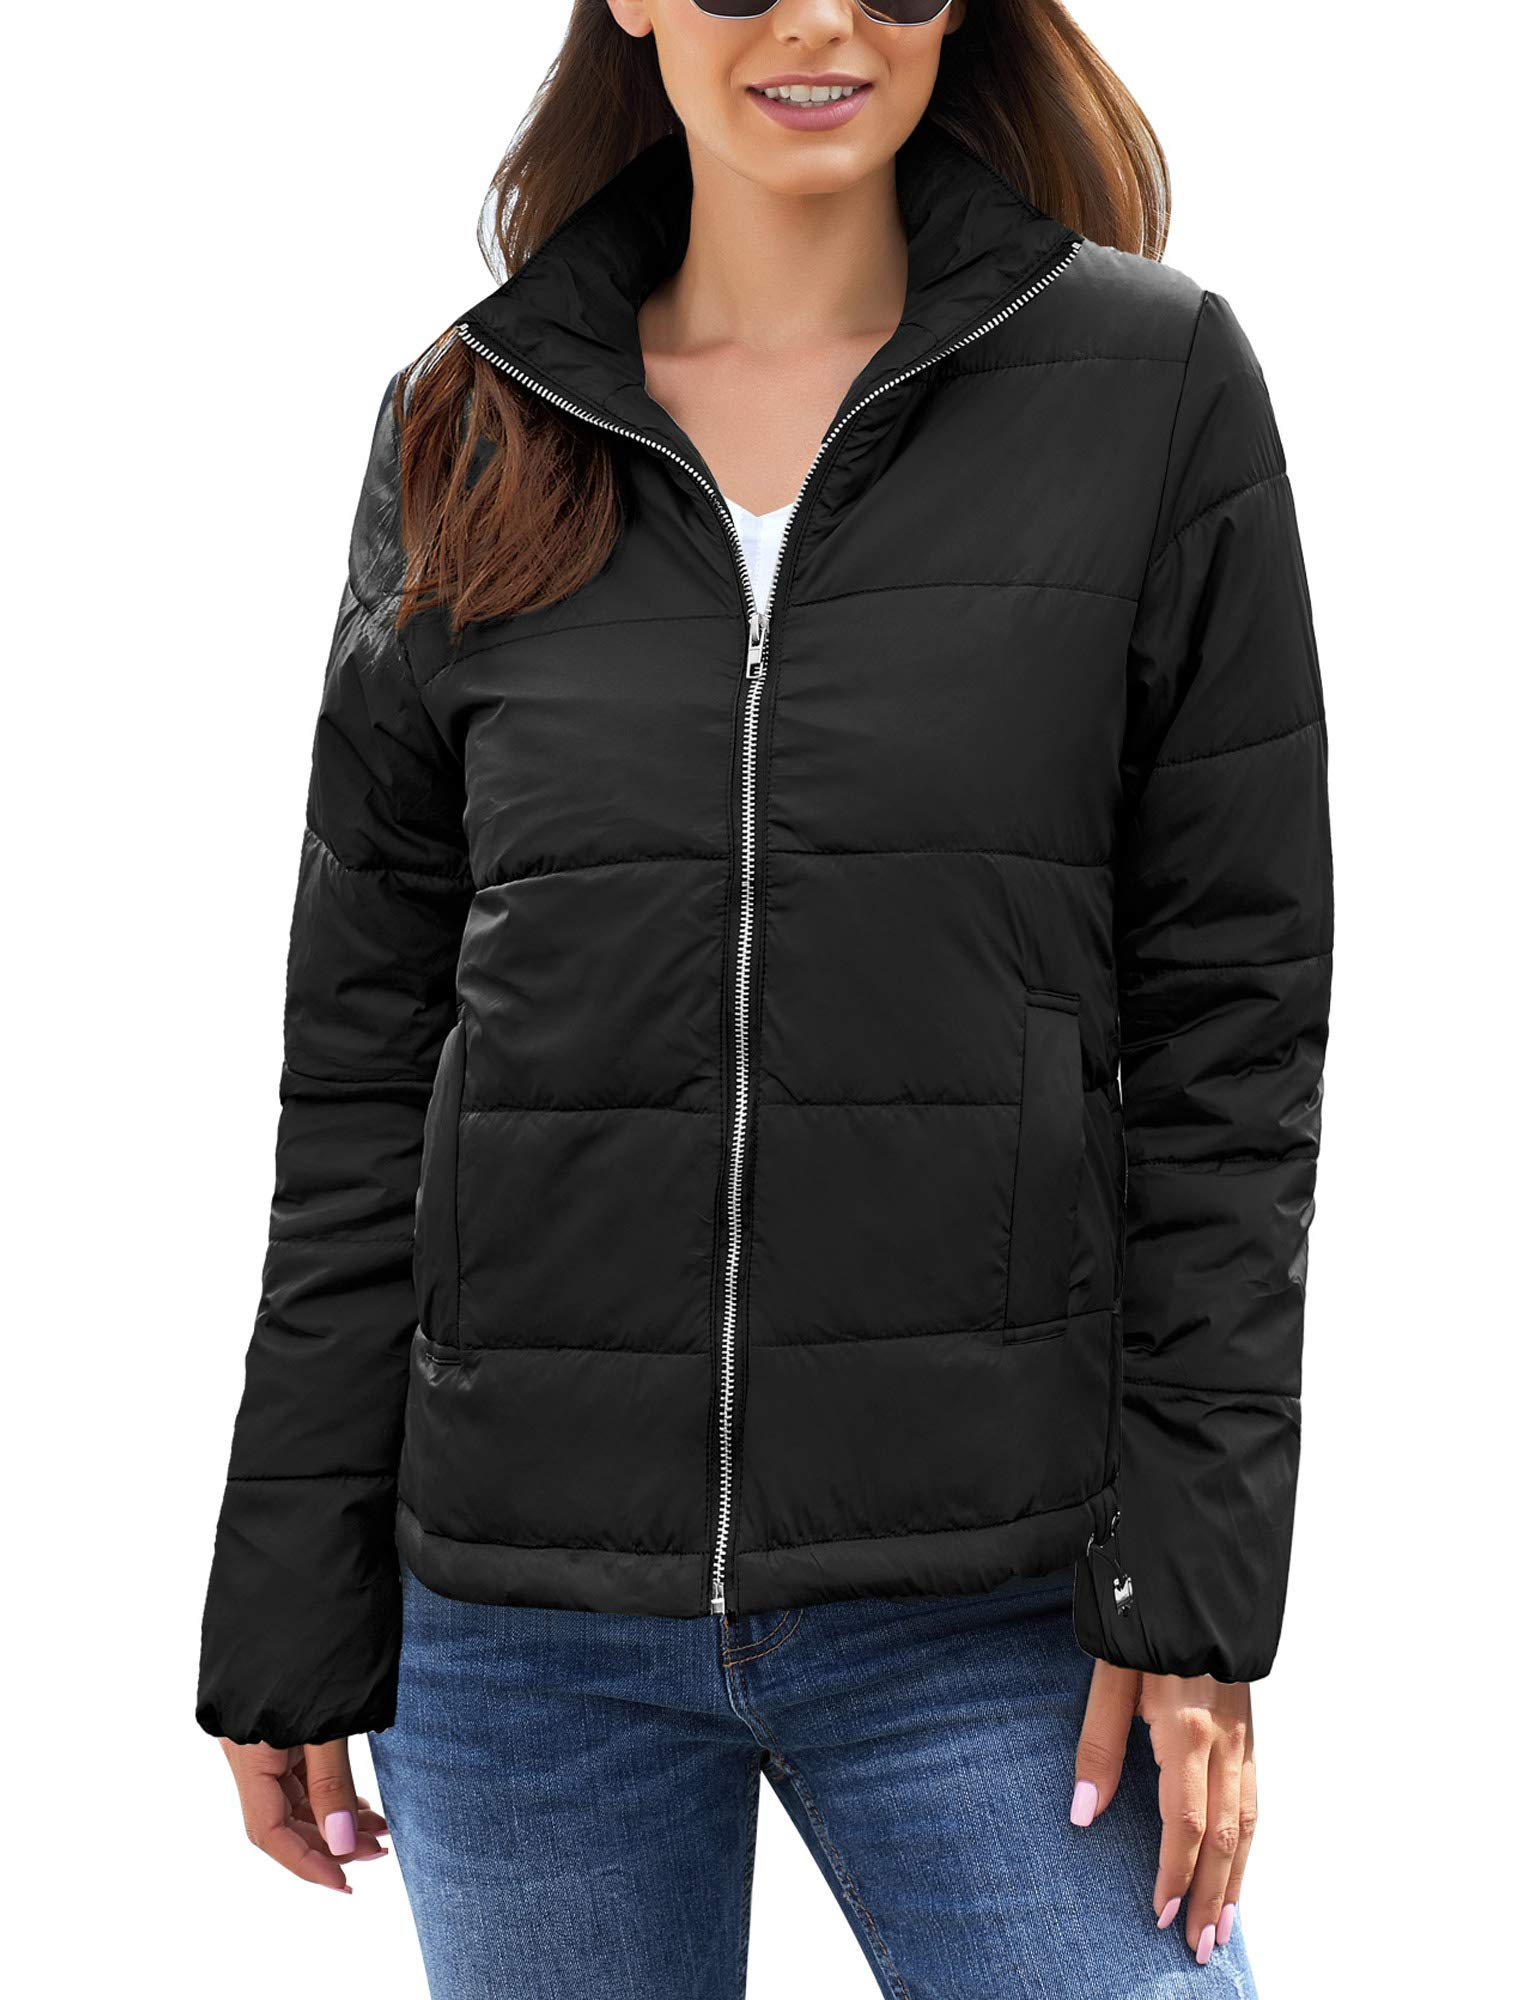 GRAPENT Women's Black Casual Pockets Zipper Quilted Parka Jacket Puffer Coat Winter Outerwear Large US 12-14 by GRAPENT